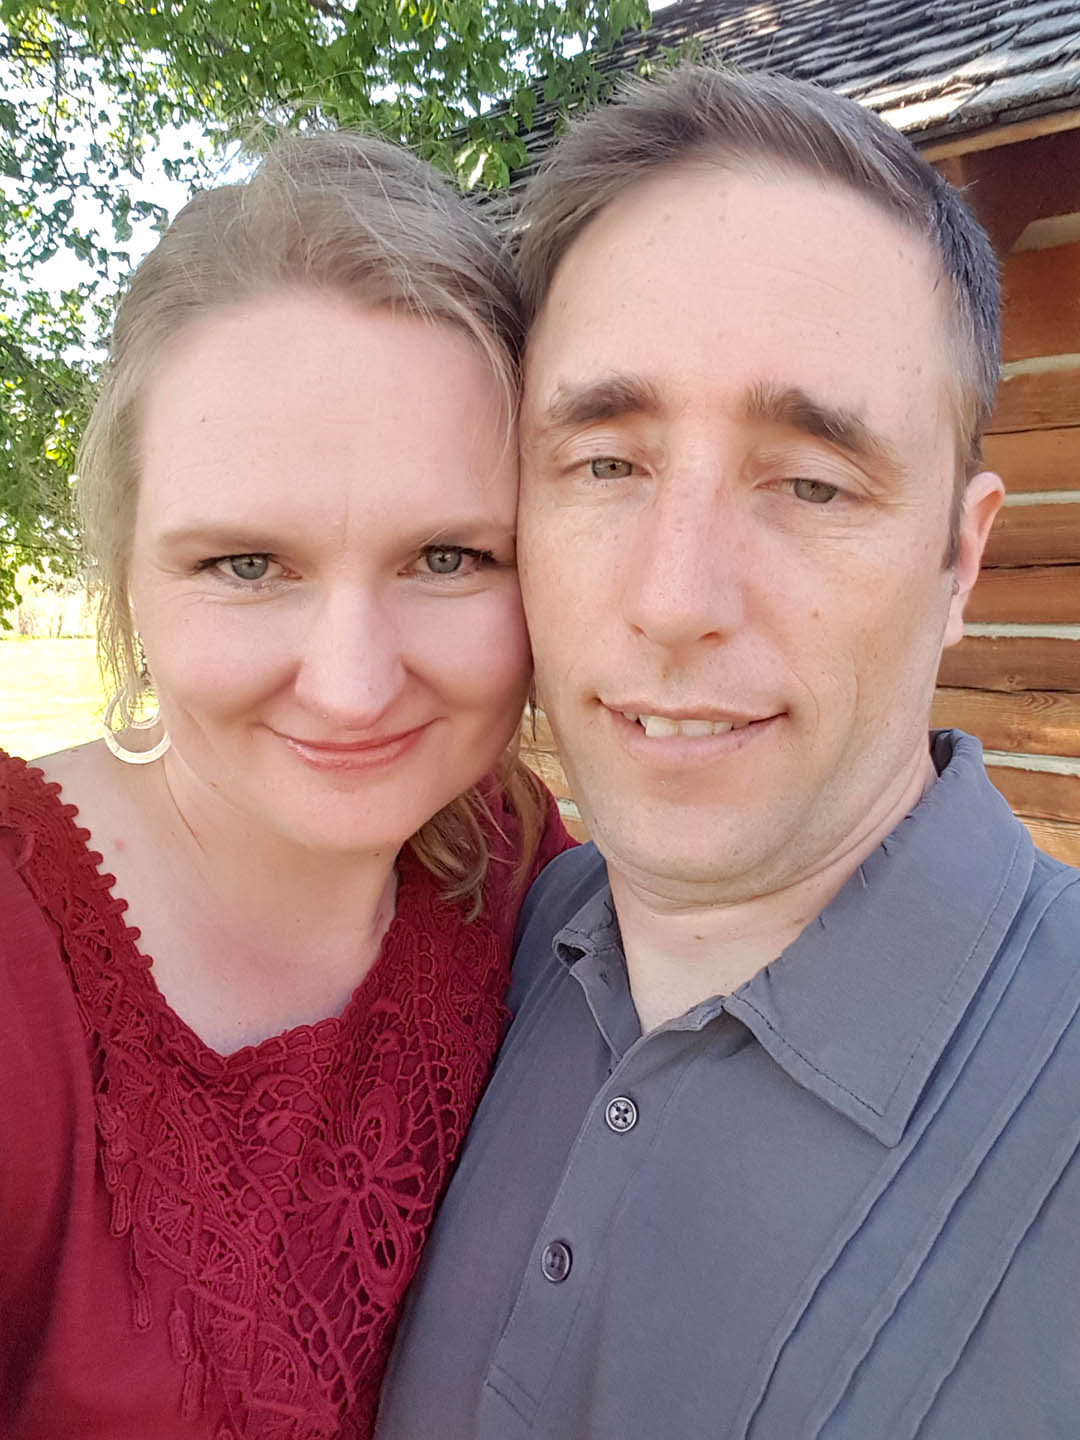 Two lovebirds on our 17th anniversary.